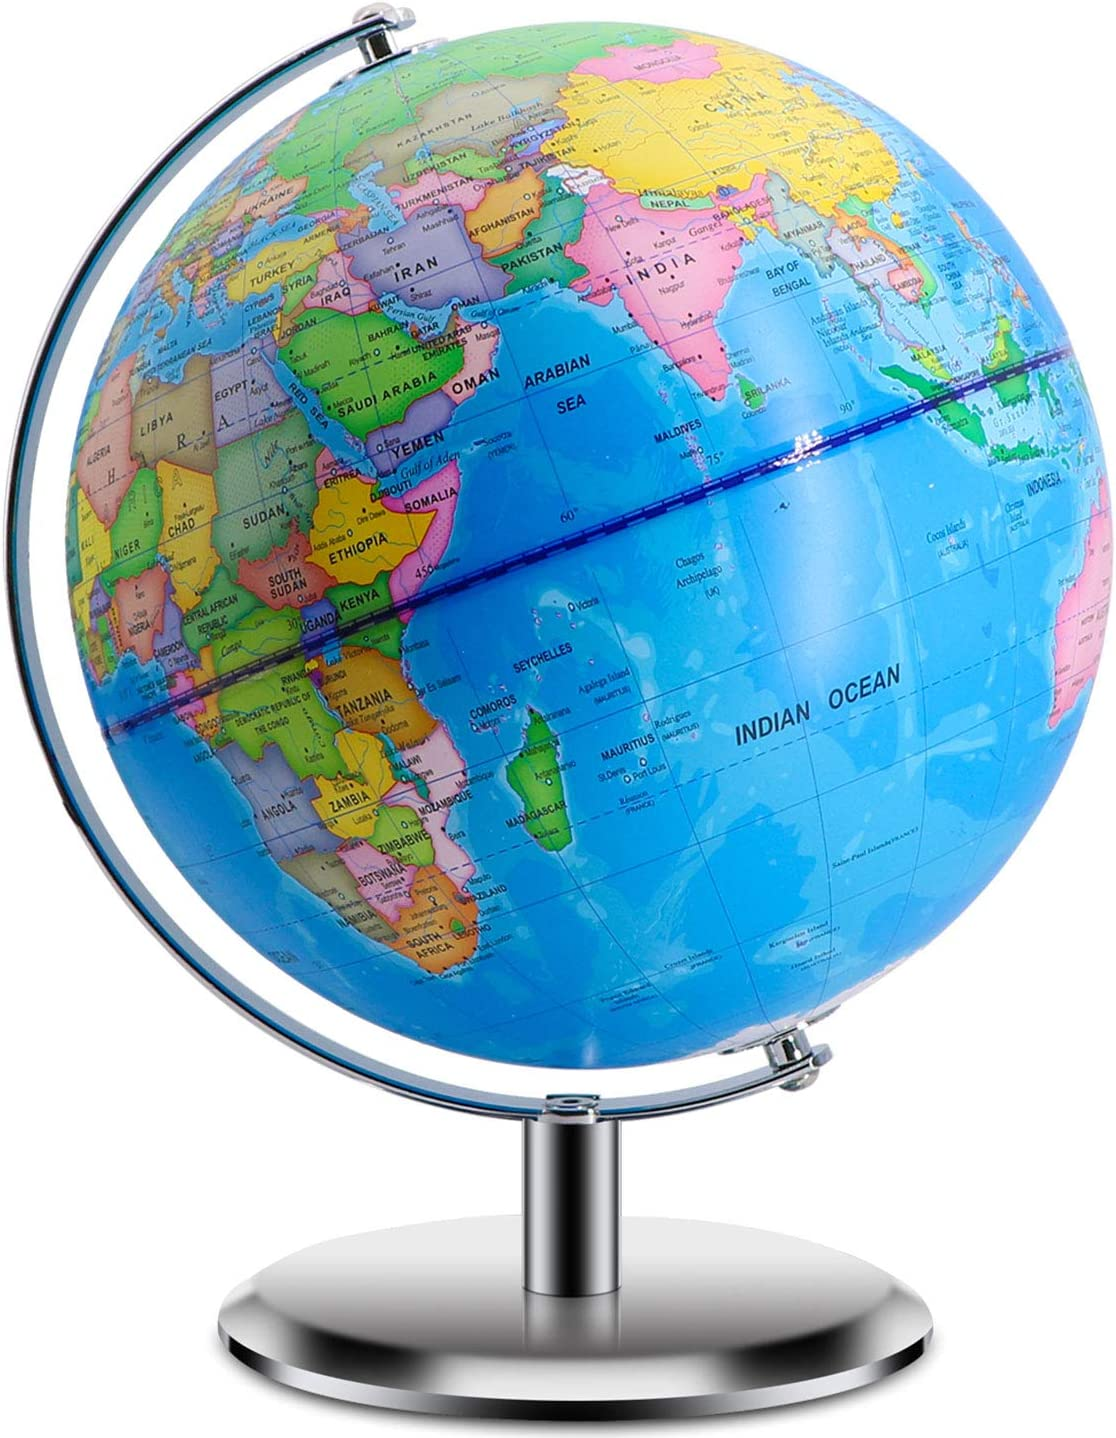 Amazon Com World Globe With Stand Adults 9 Inch Diameter Geographic Globes Discovery World Learning Toys Globe For Kids Office Products